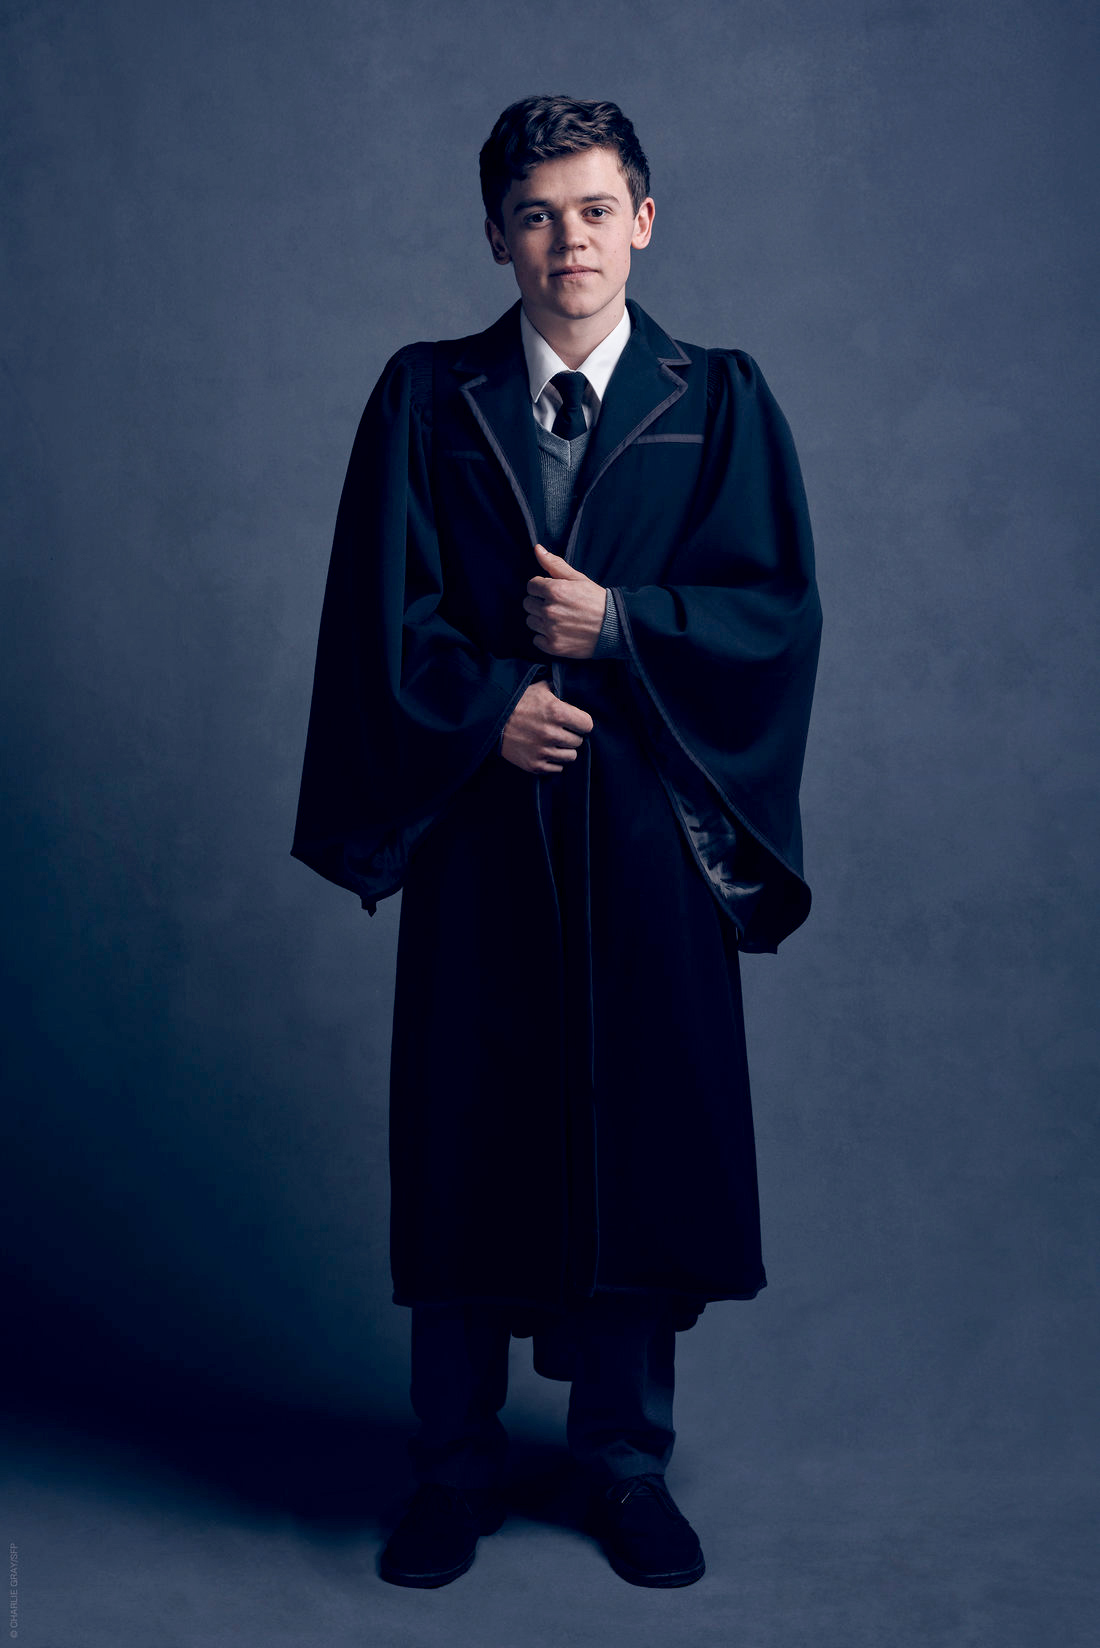 Harry Potter and the Cursed Child Albus Severus